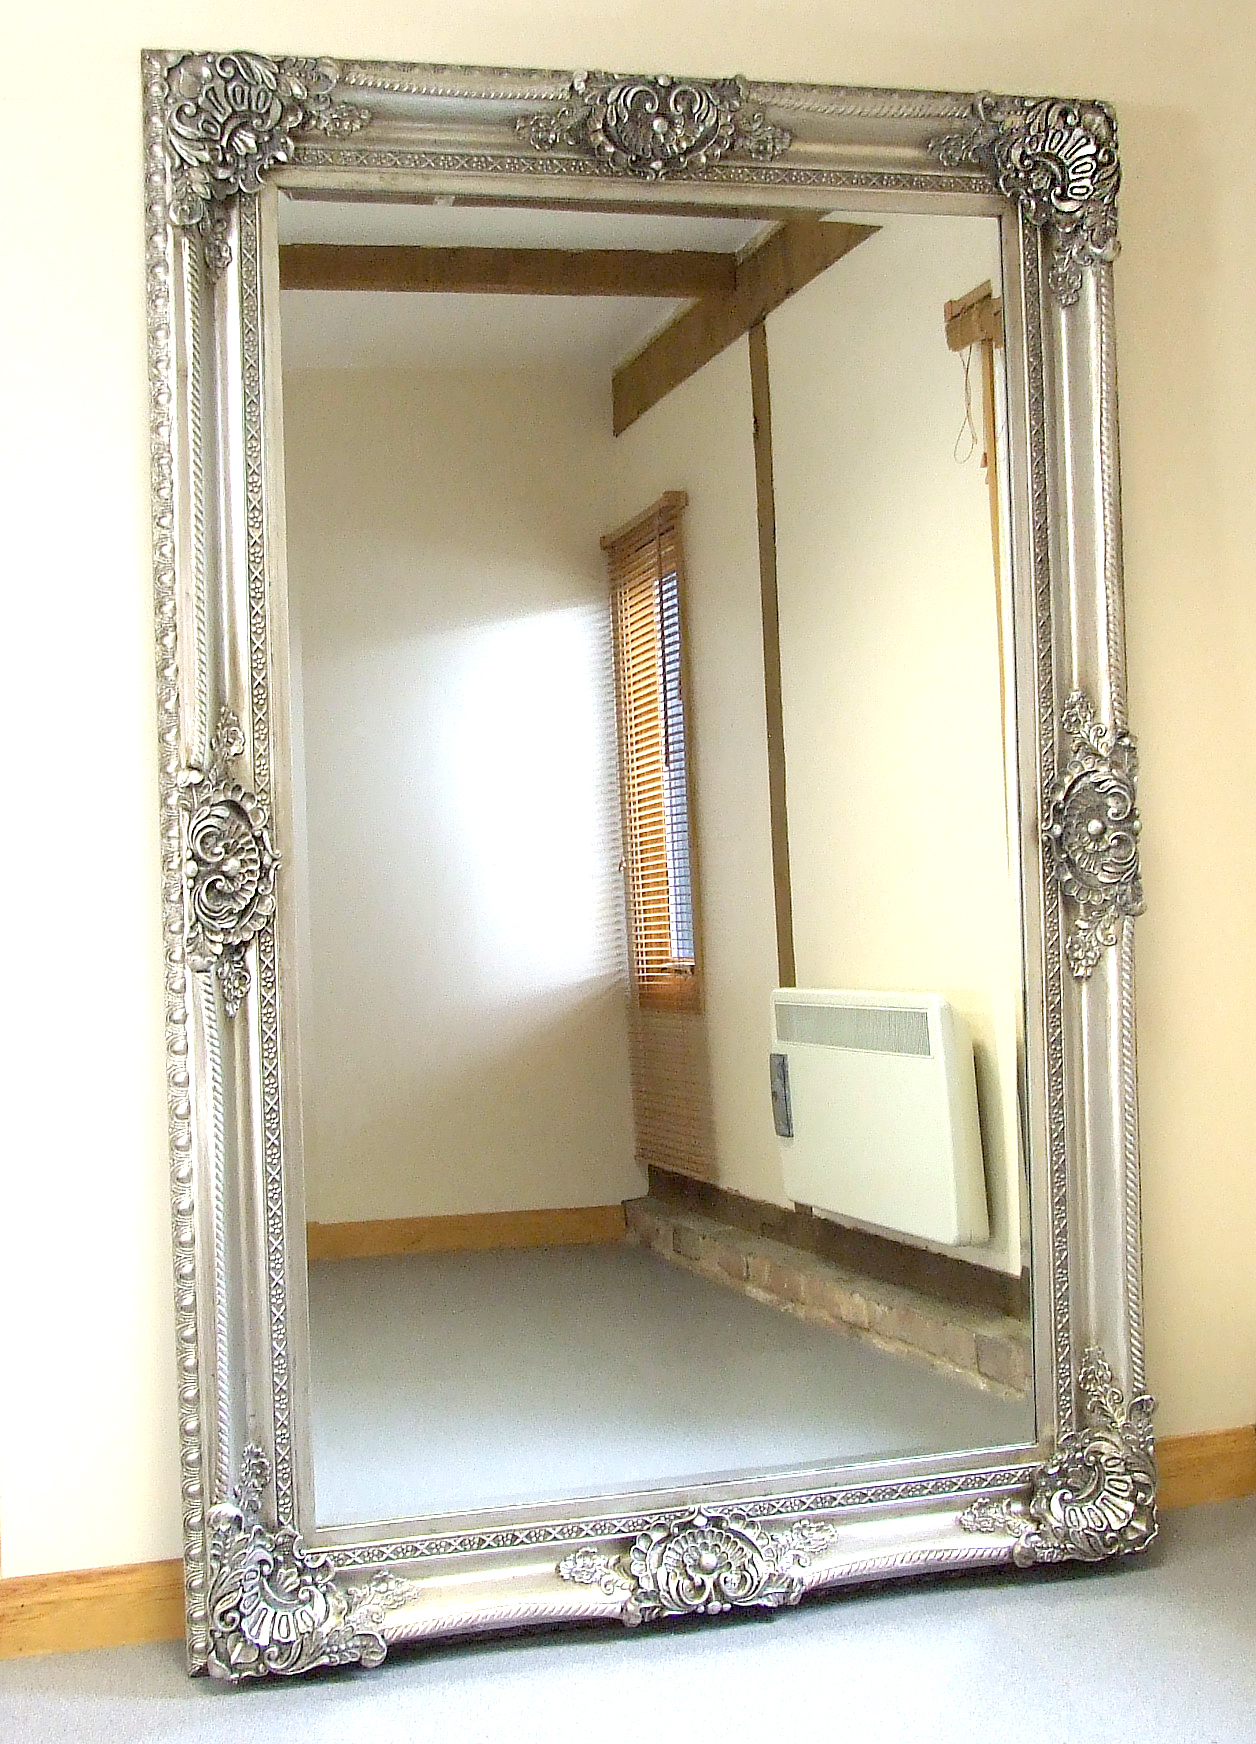 Entrancing floor length mirrors ornate ornament mirror frame can be place at your beautiful bedroom Ideas